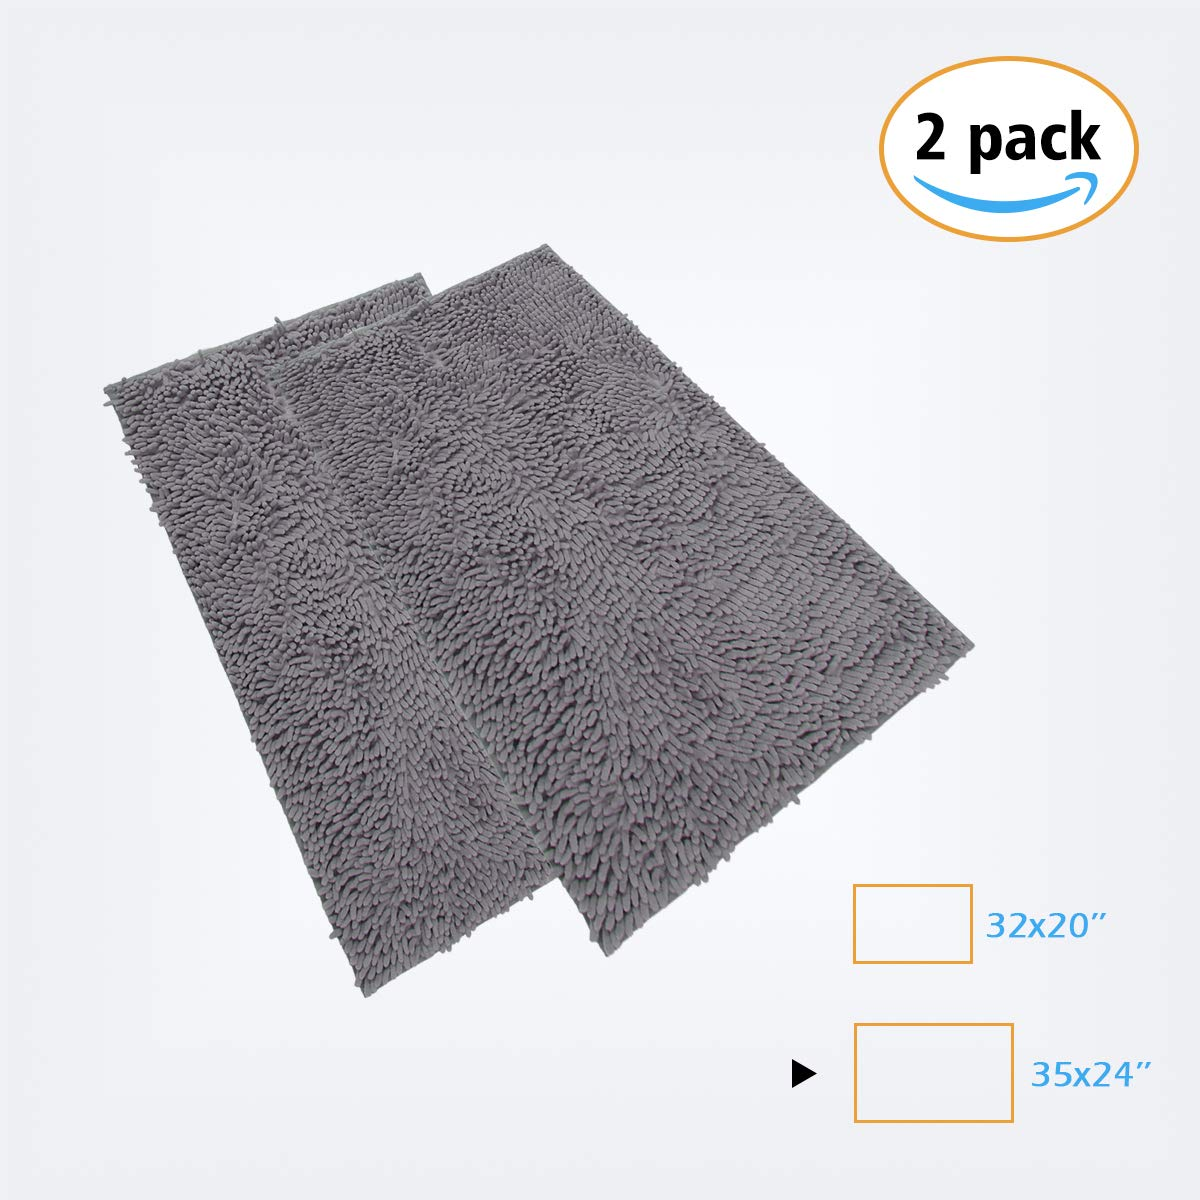 YOUKADA 2-Pack Bath Mat Shag Microfiber Bathroom Mats Machine-Washable Bedroom Mats Anti Slip Water Absorbent TPR Surface Non-Shedding Runner Carpet Mats for Bath Tub Shower Bathroom 20x32 inch(Gray)